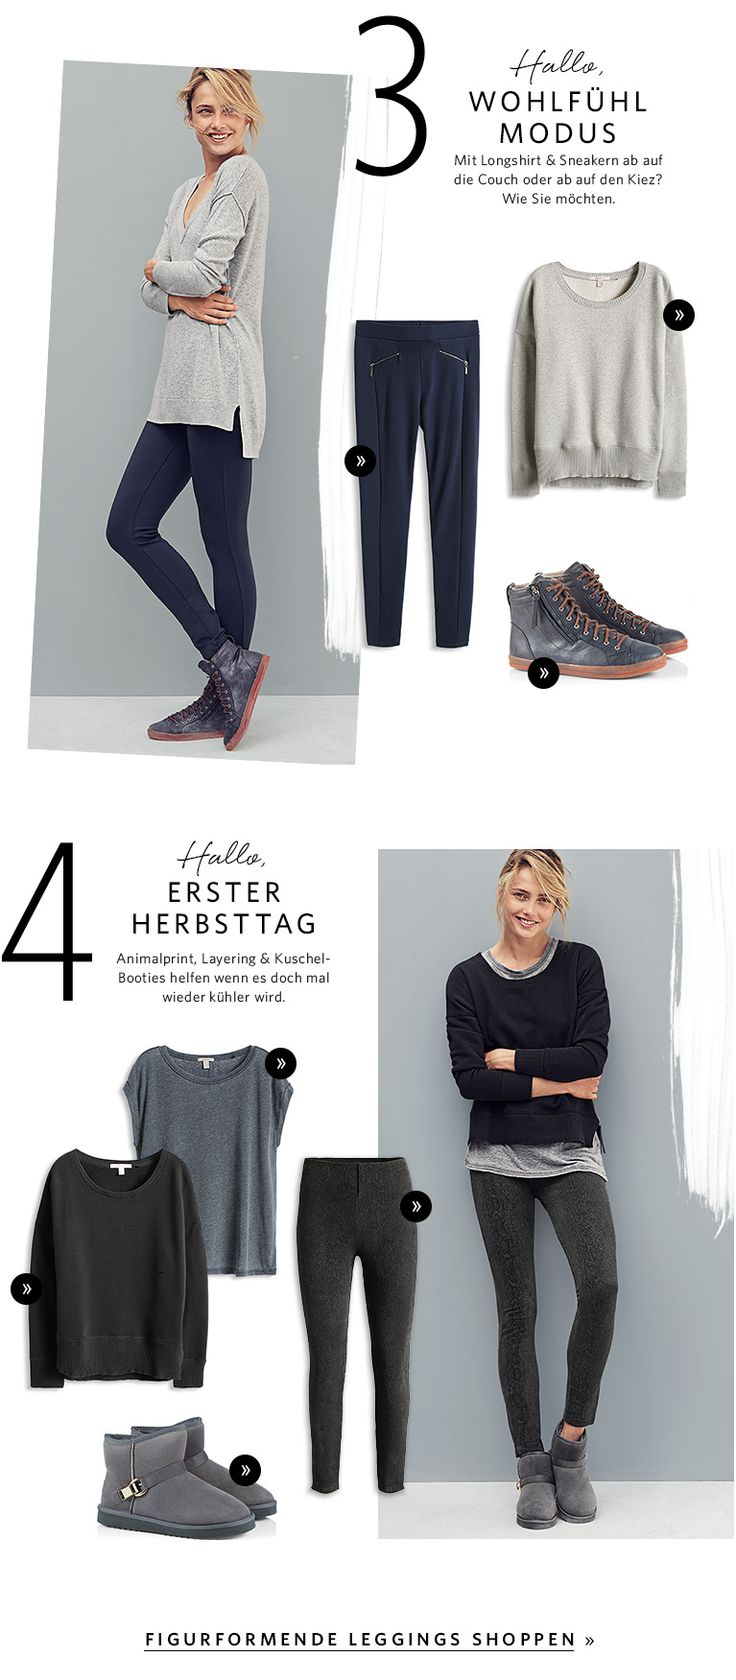 http://www.esprit.de/damen/trends-specials/hello-leggings